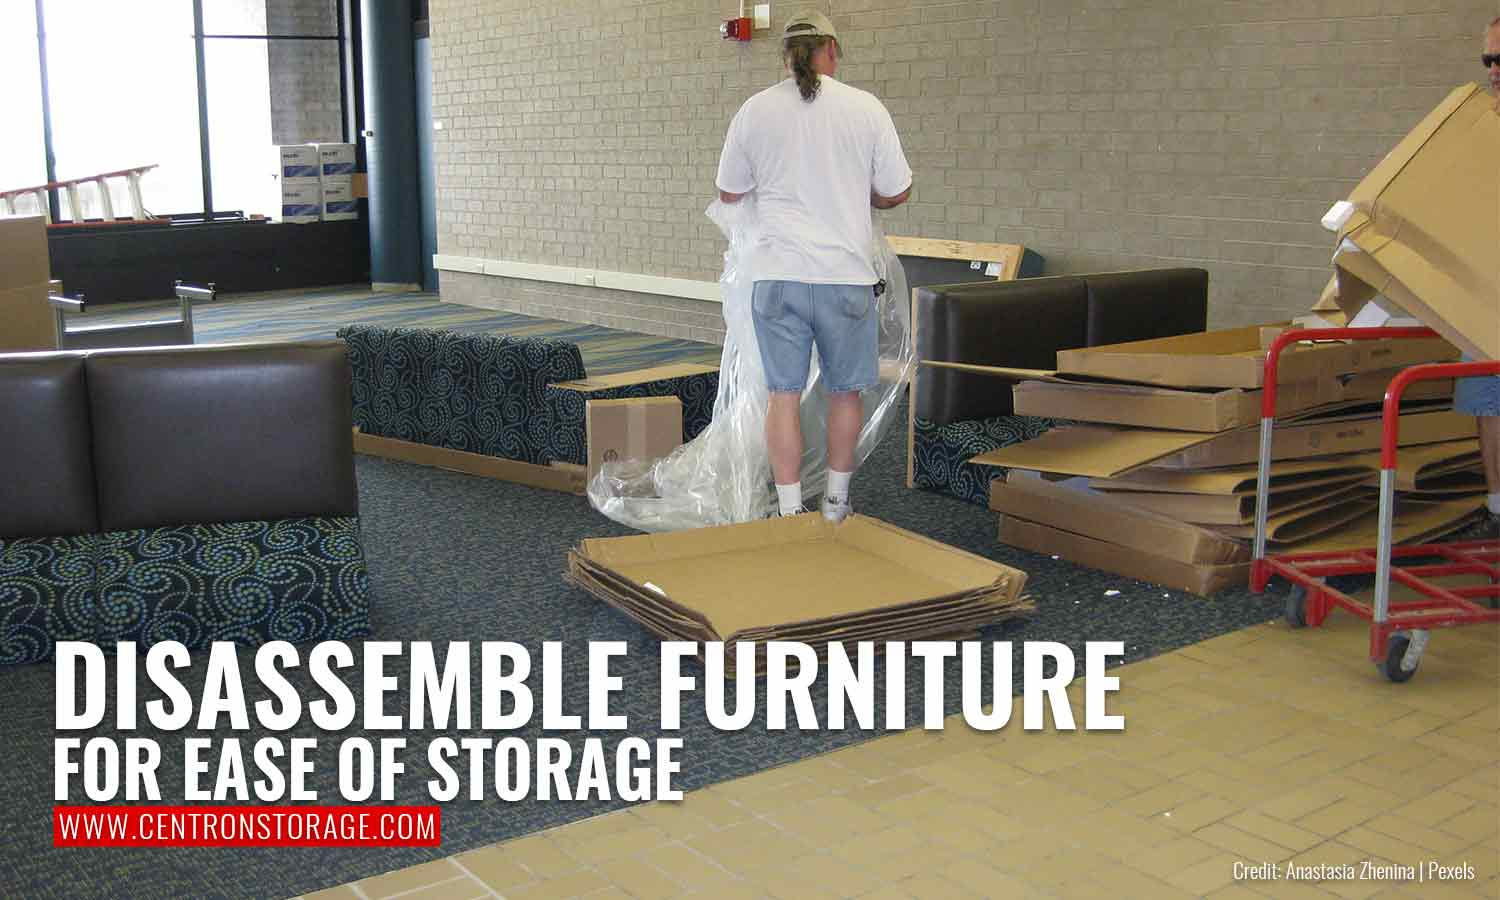 Disassemble furniture for ease of storage